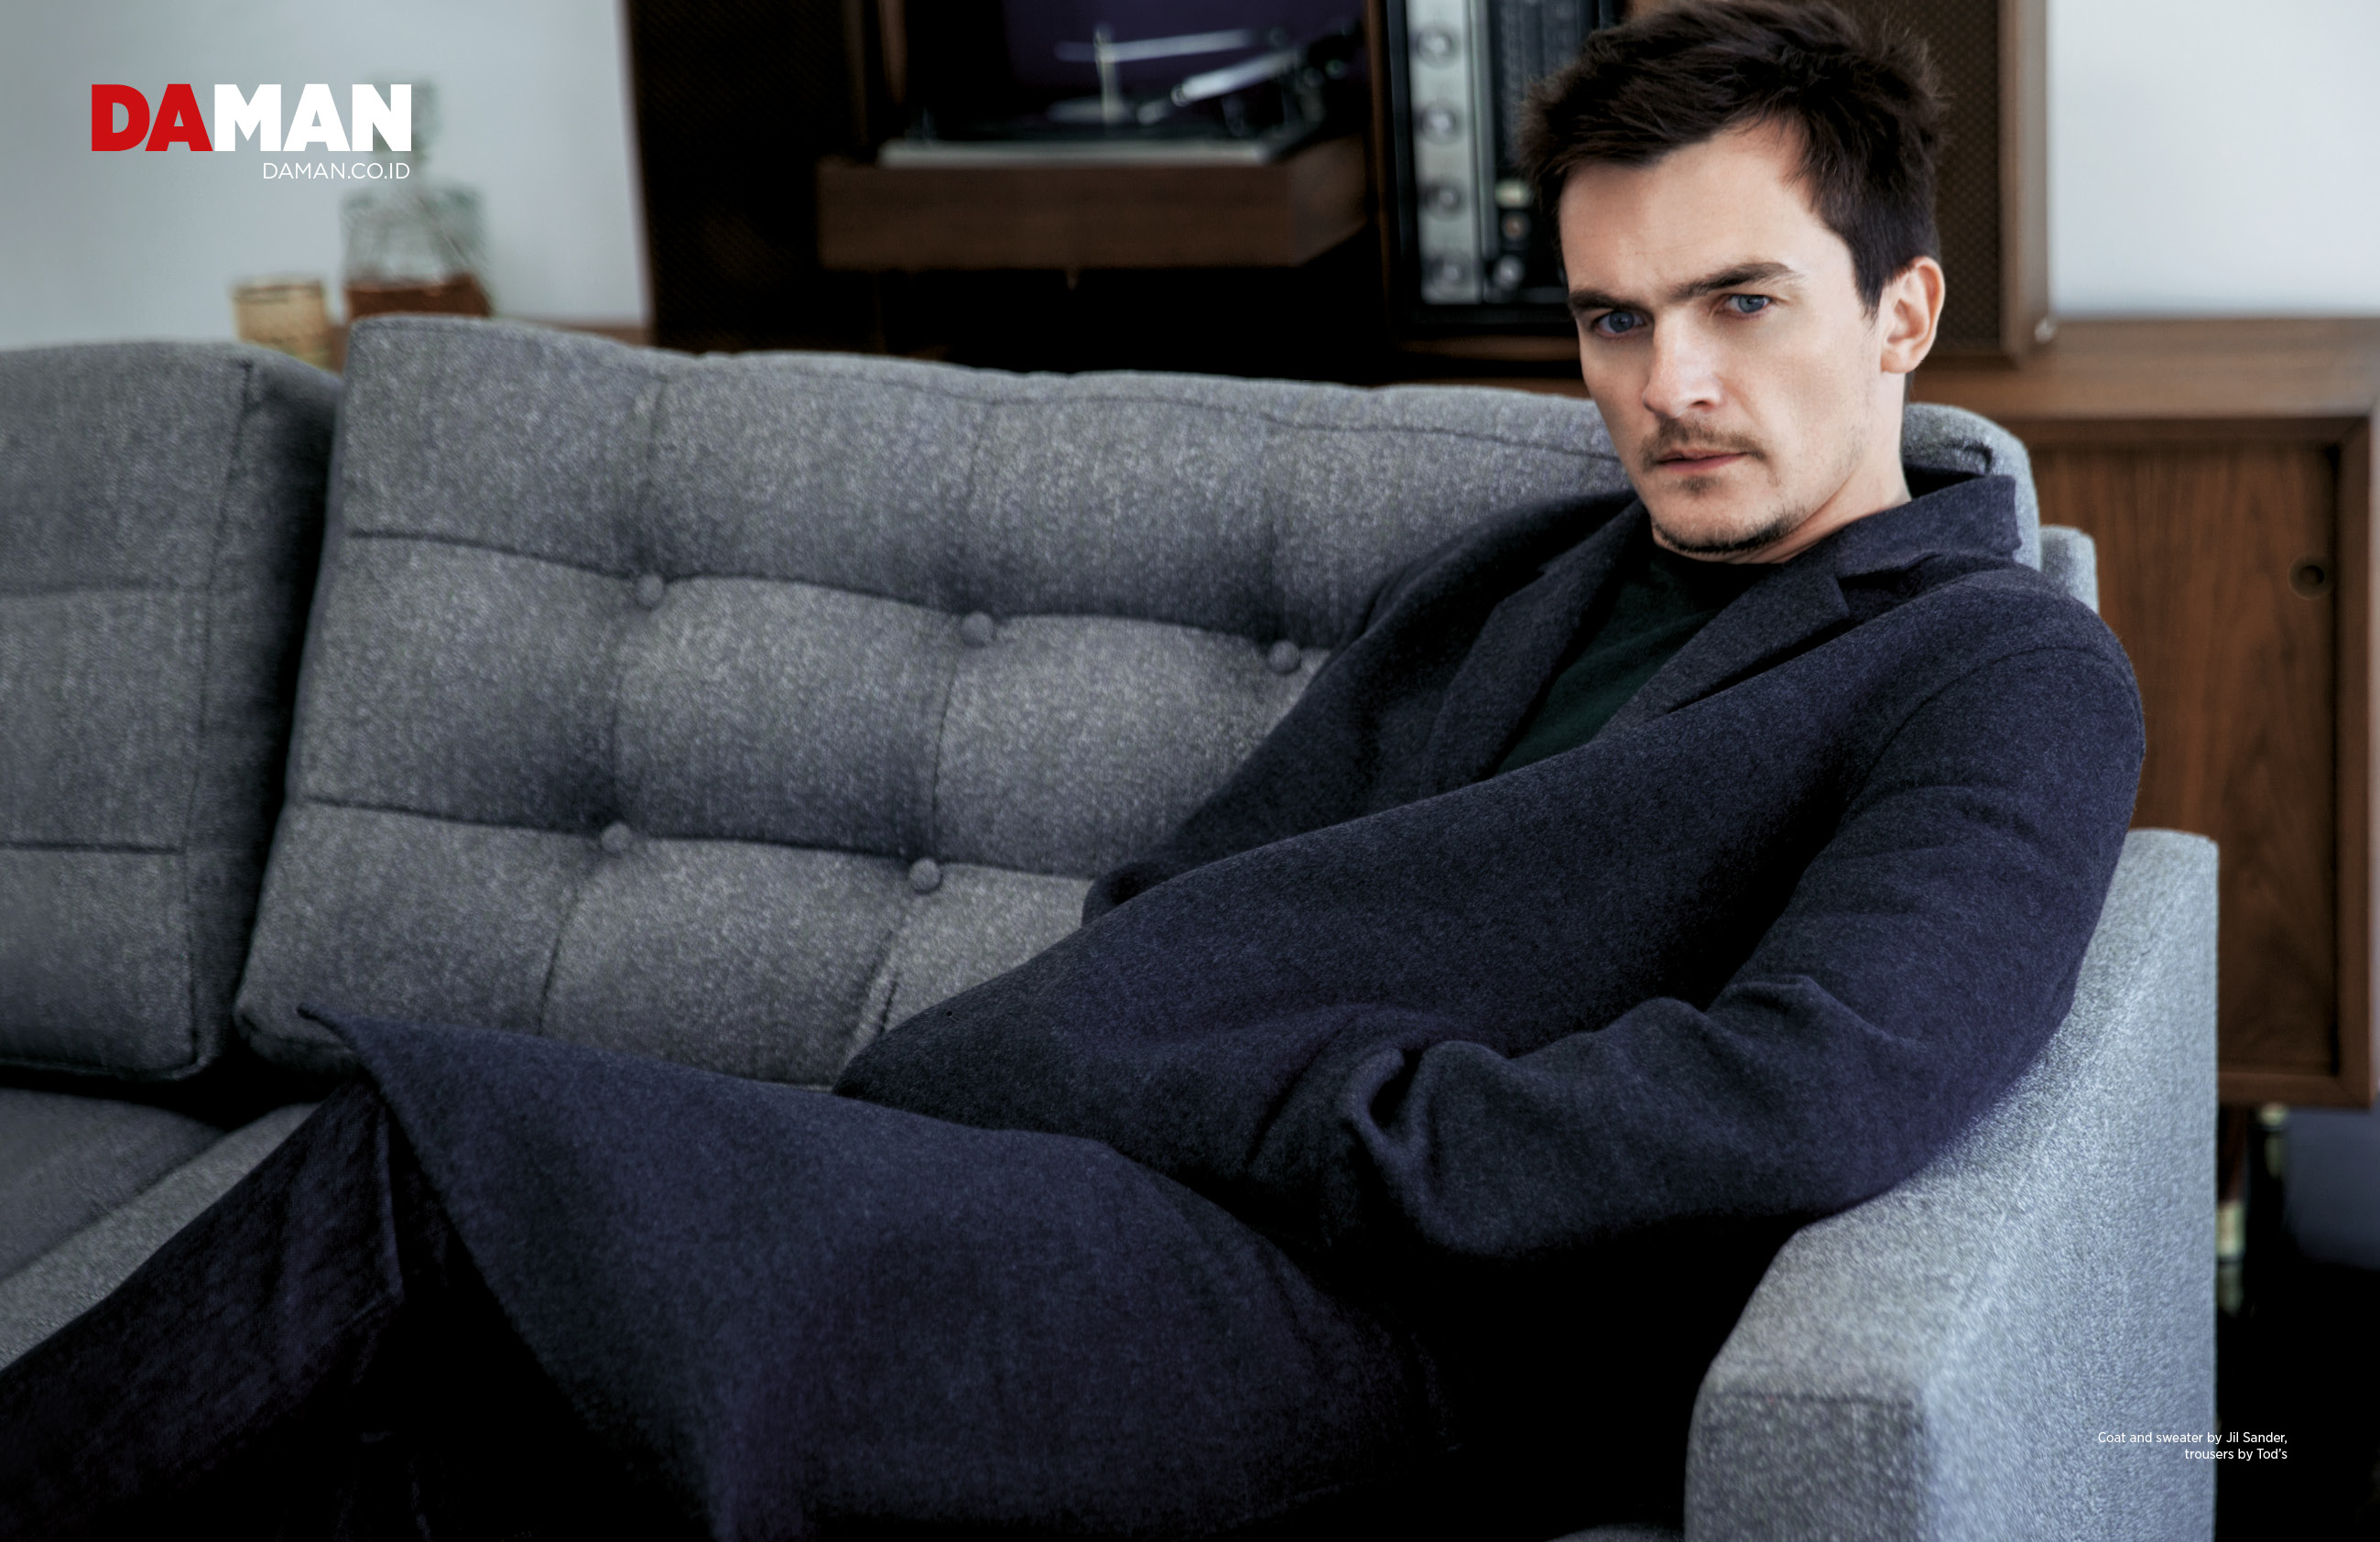 FEATURE_RUPERT FRIEND_DPS_3